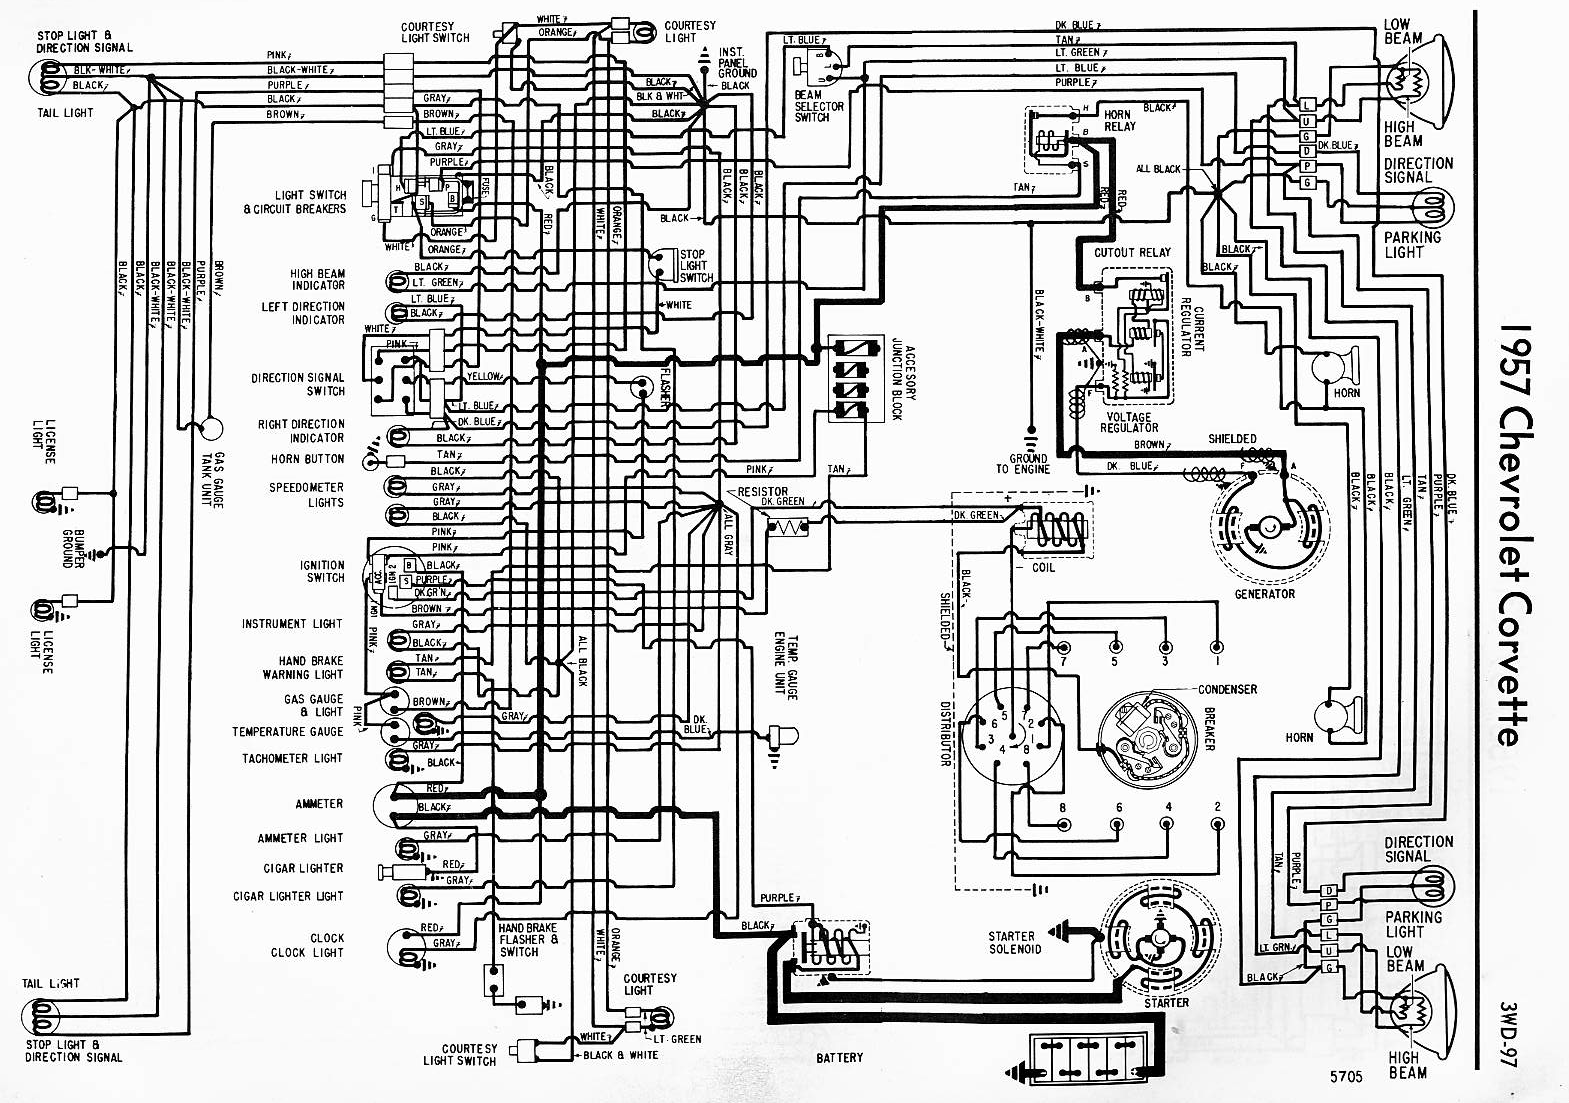 57 corvettte tracer schematic best one 1957 corvette wiring diagram willcox corvette, inc corvette wiring diagram at gsmportal.co